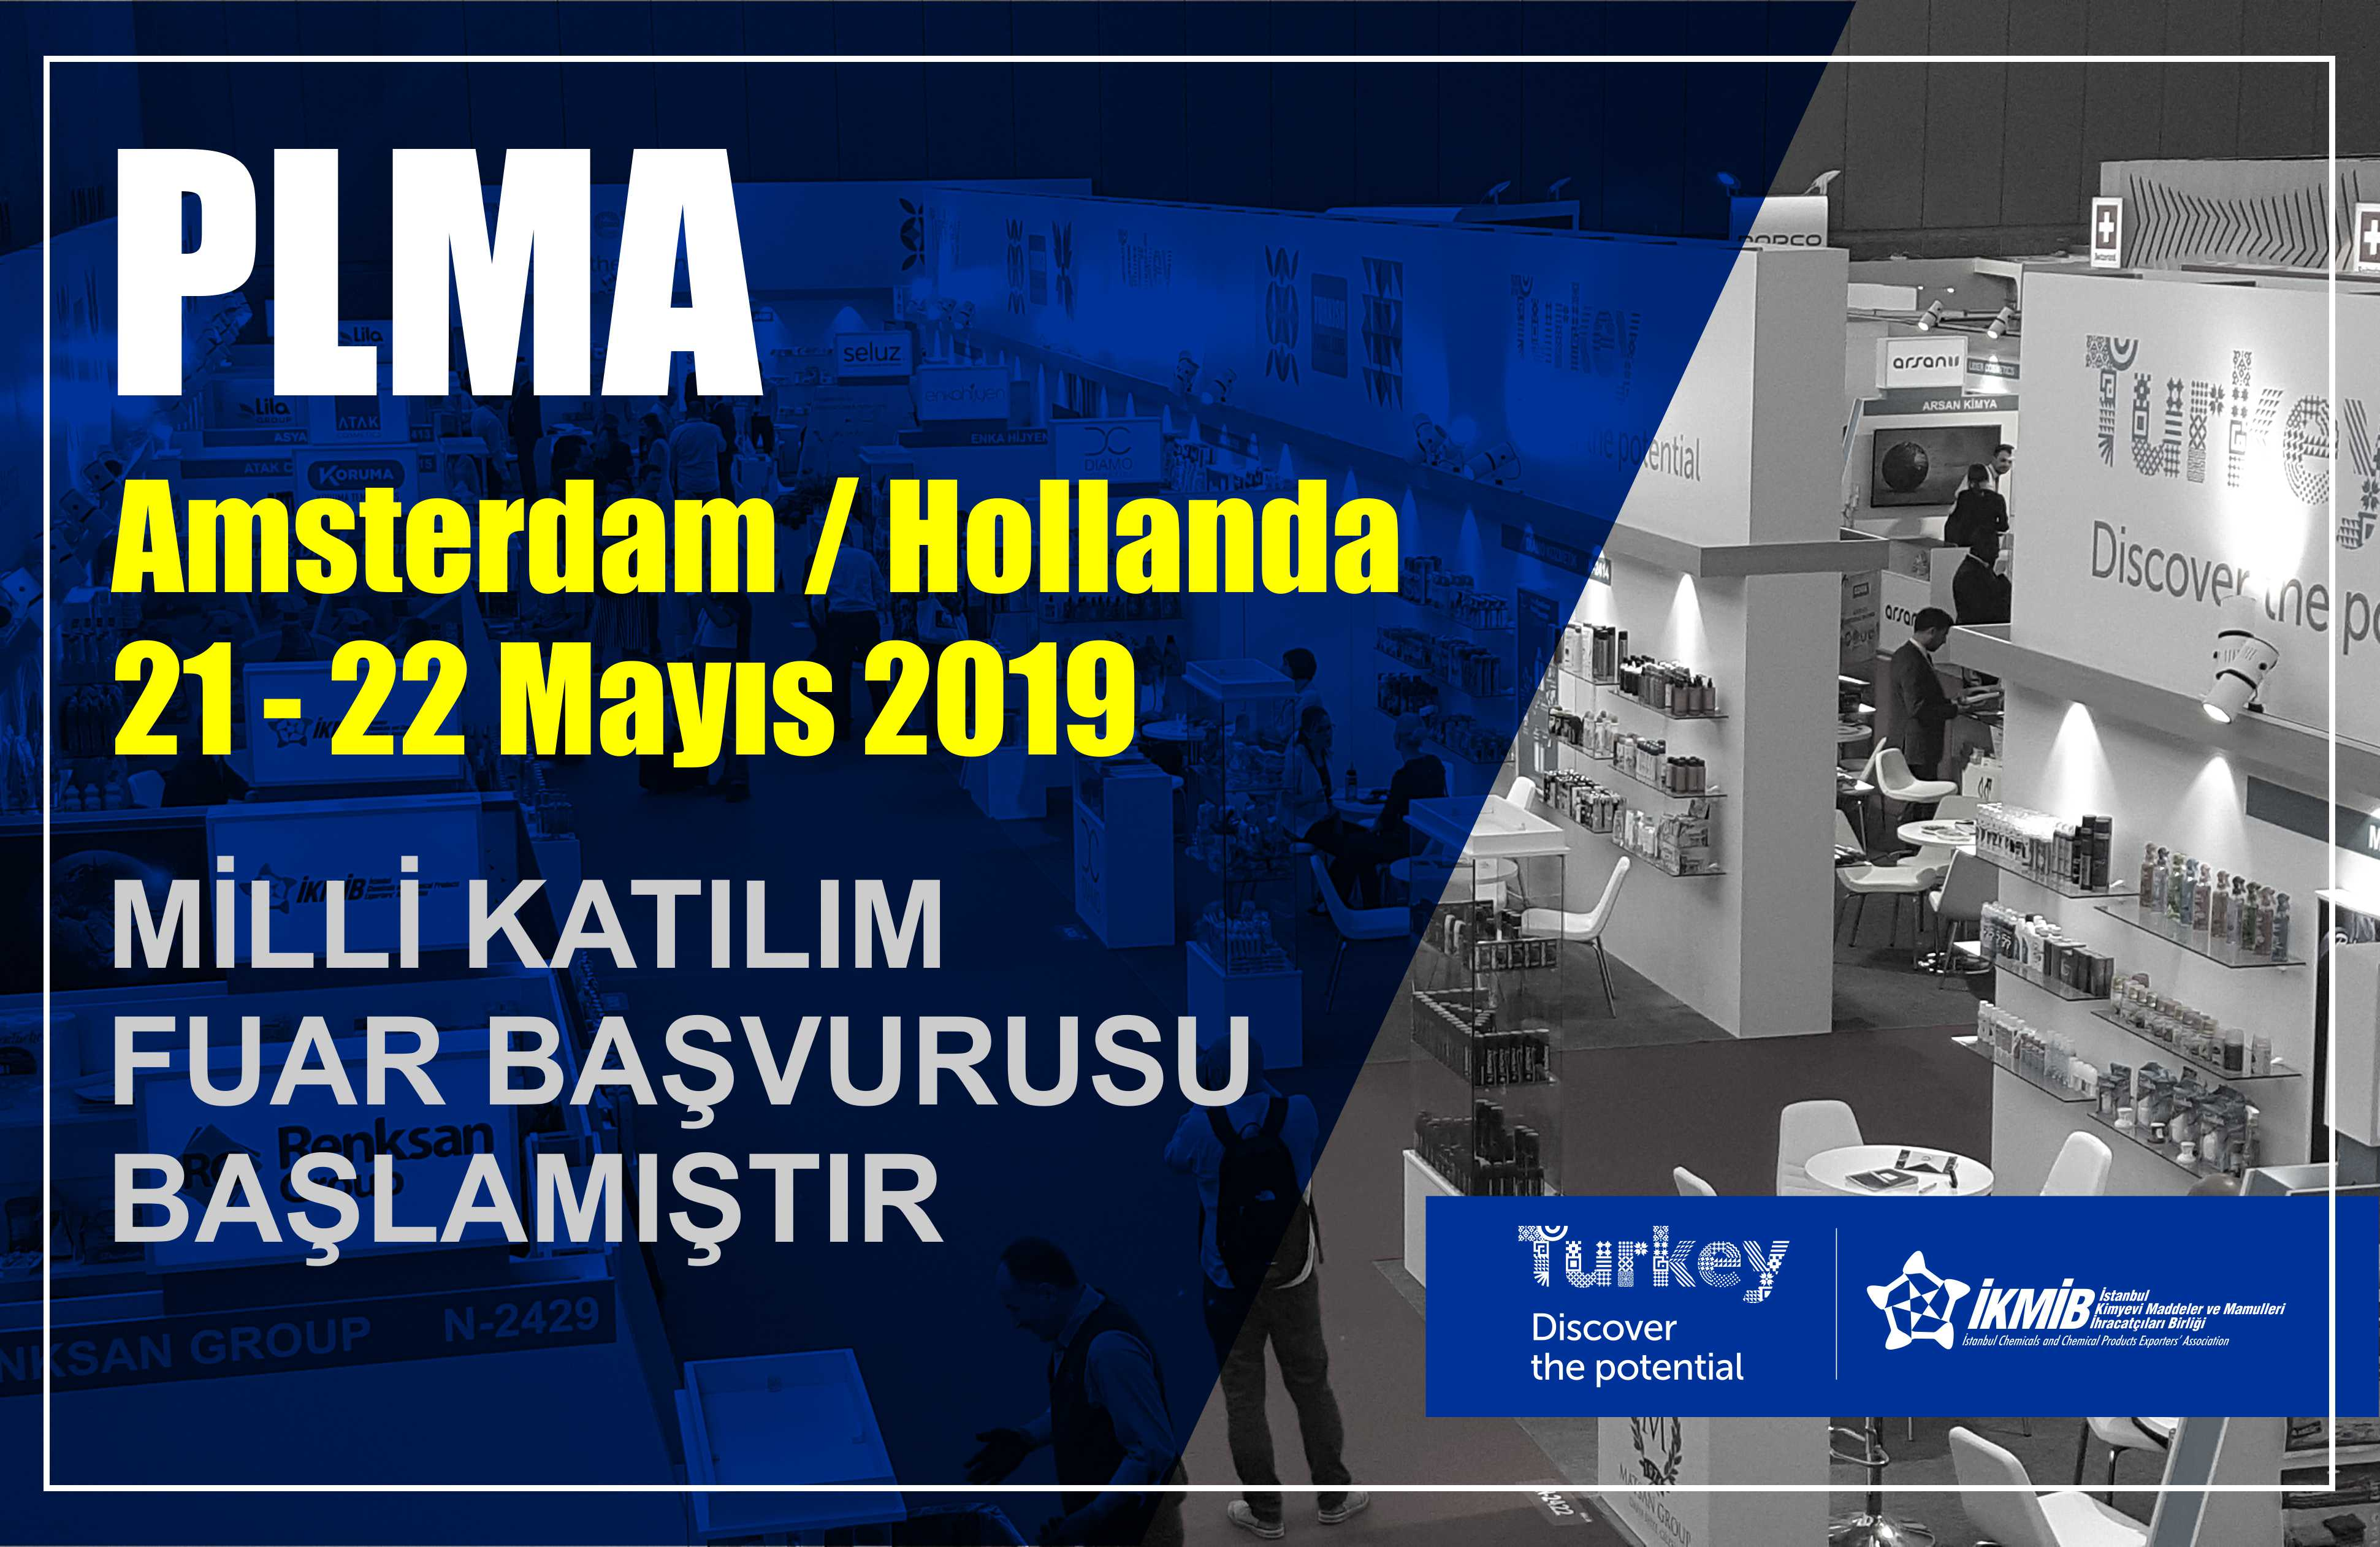 PLMA's World of Private Label 2019 Fuarı Milli Katılım Organizasyonu